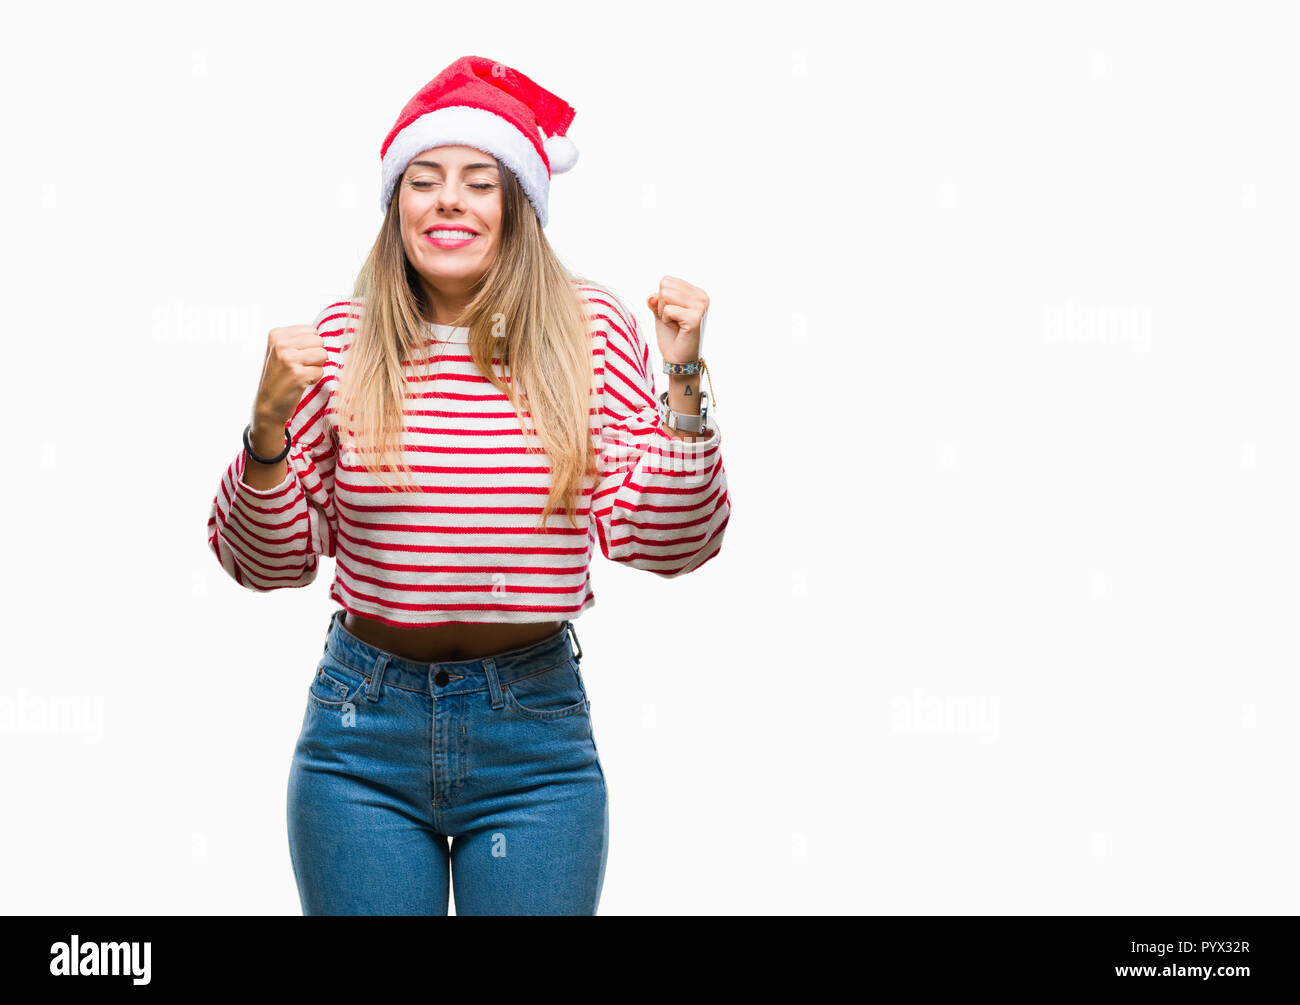 Young beautiful woman wearing christmas hat over isolated background very happy and excited doing winner gesture with arms raised, smiling and screami - Stock Image